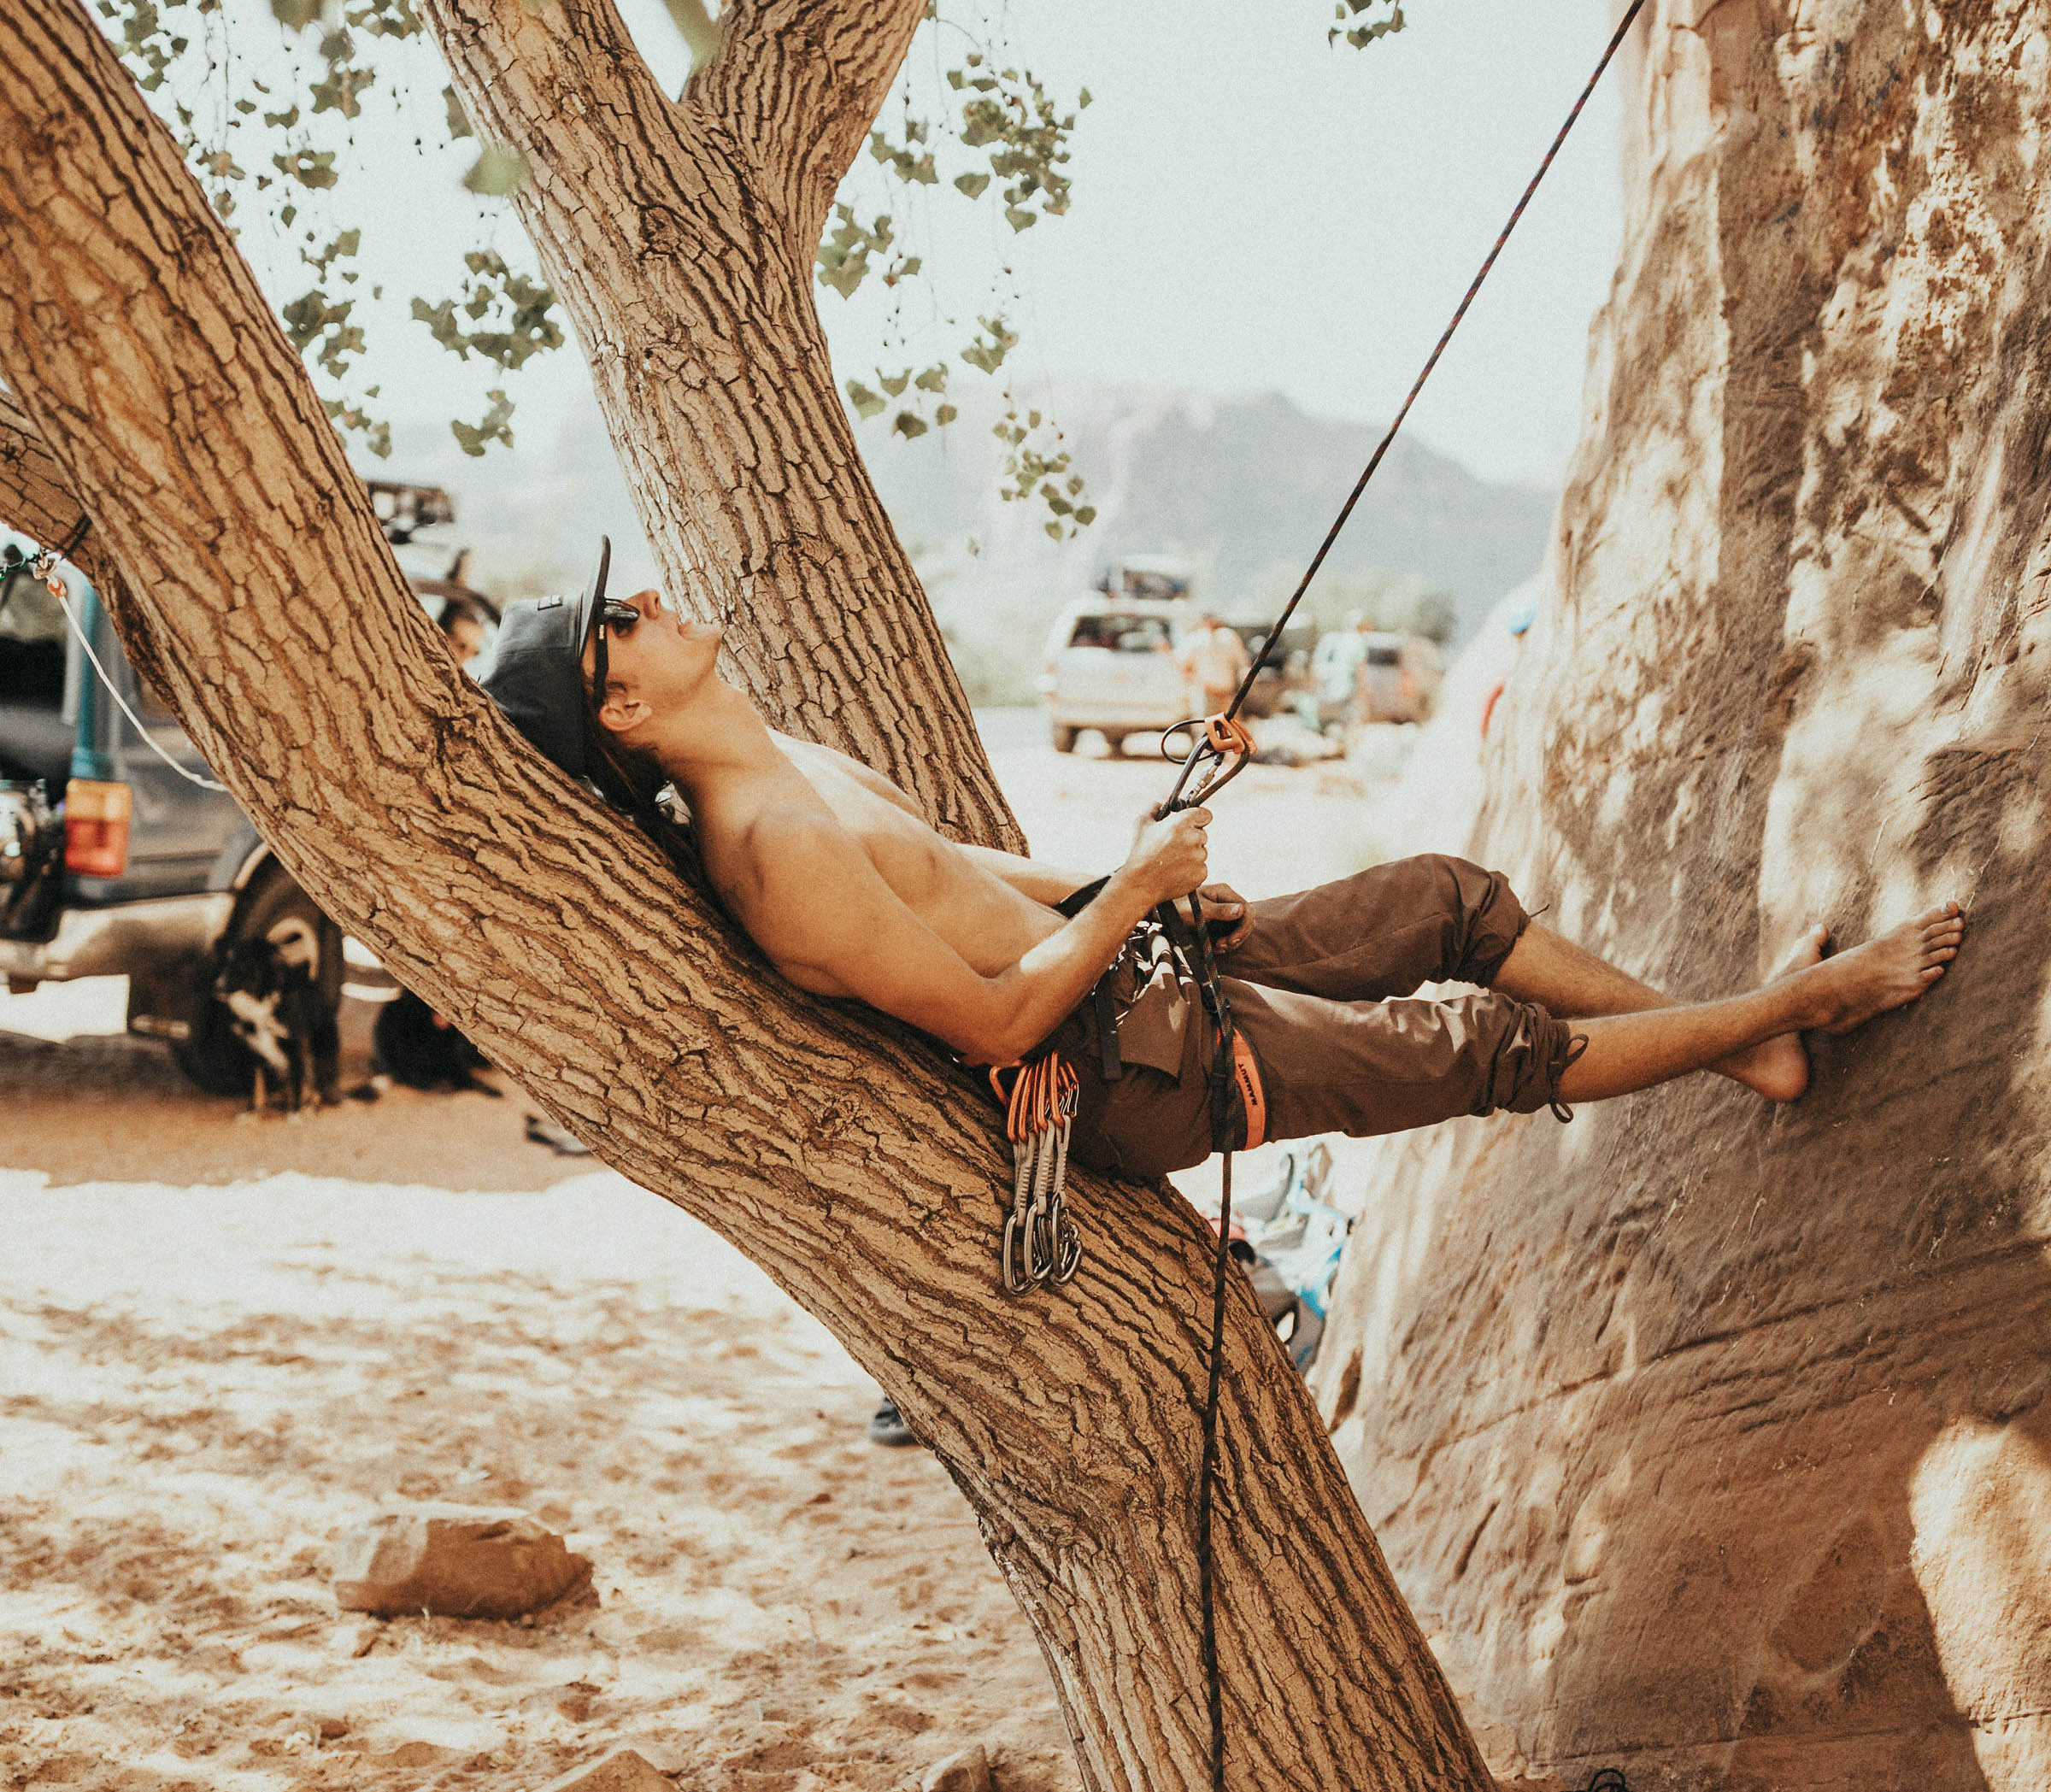 Easton Walker - Easton is a 23 year old dirtbag from Northern Utah. He has spent the last year in New Zealand as a canyoneering guide, but has now returned to the beautiful desert of Southern Utah. Easton loves the outdoors and is a self-proclaimed.